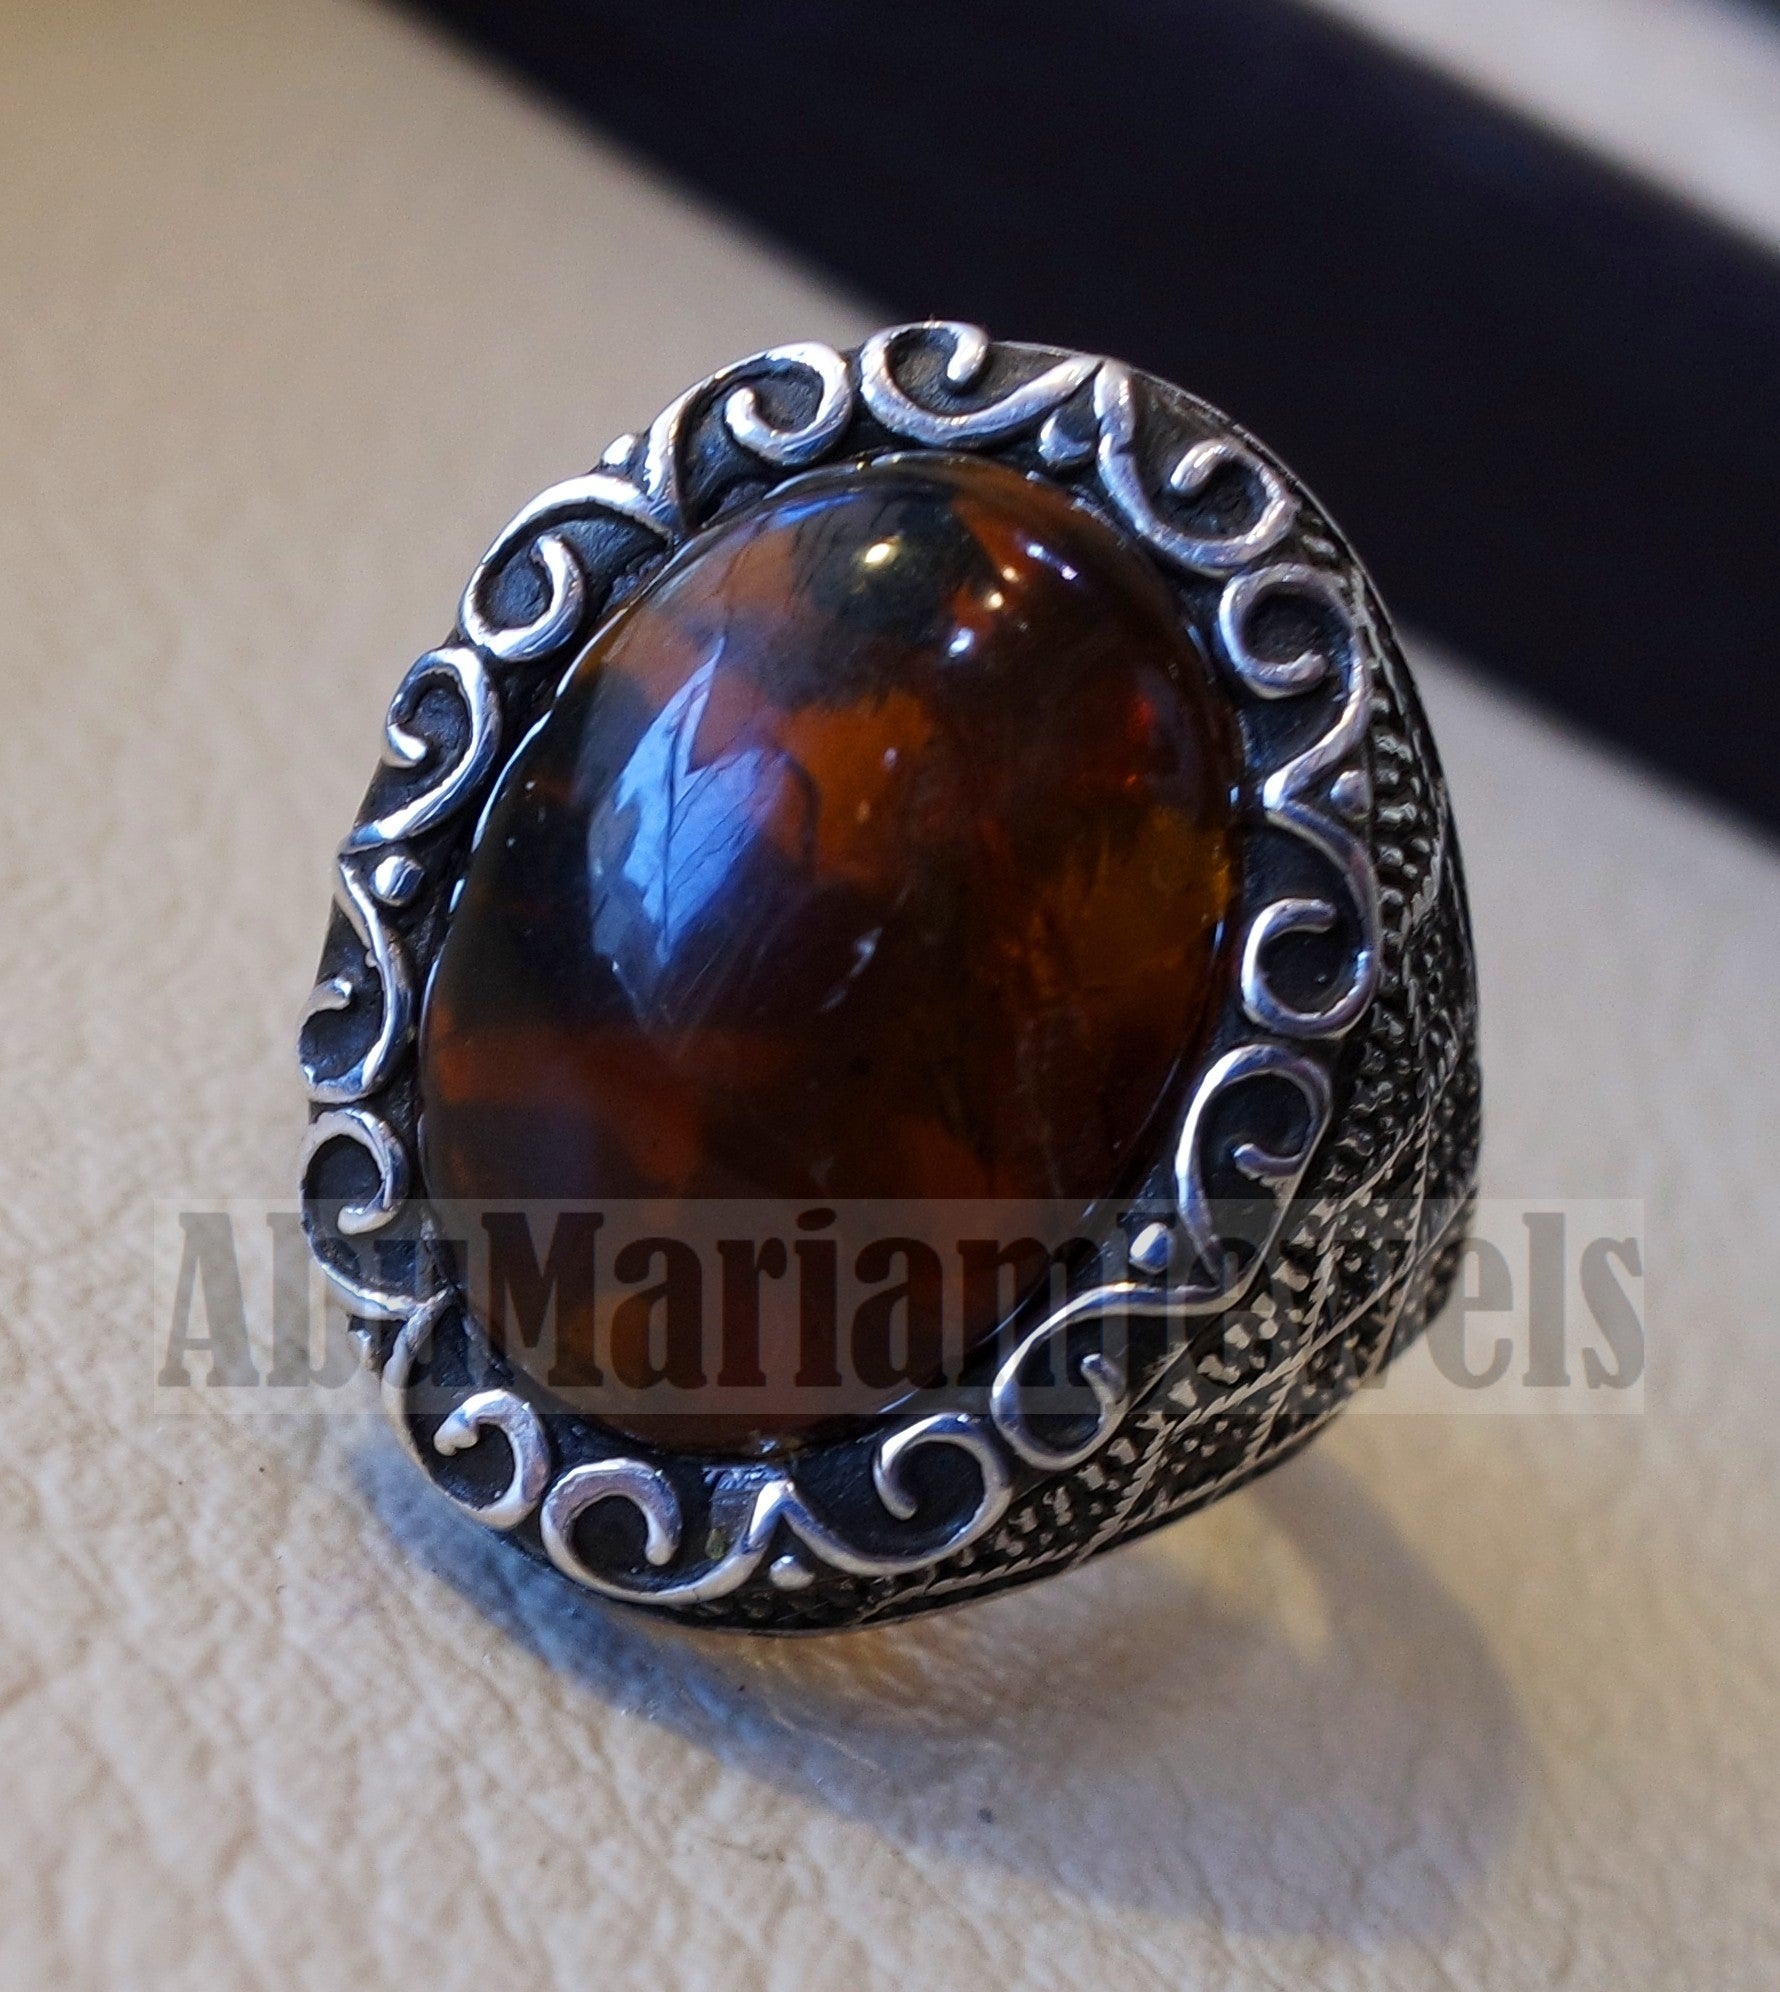 Baltic amber oval stone man heavy ring sterling silver 925 antique ottoman style jewelry all sizes fast shipping natural genuine stone كهرب